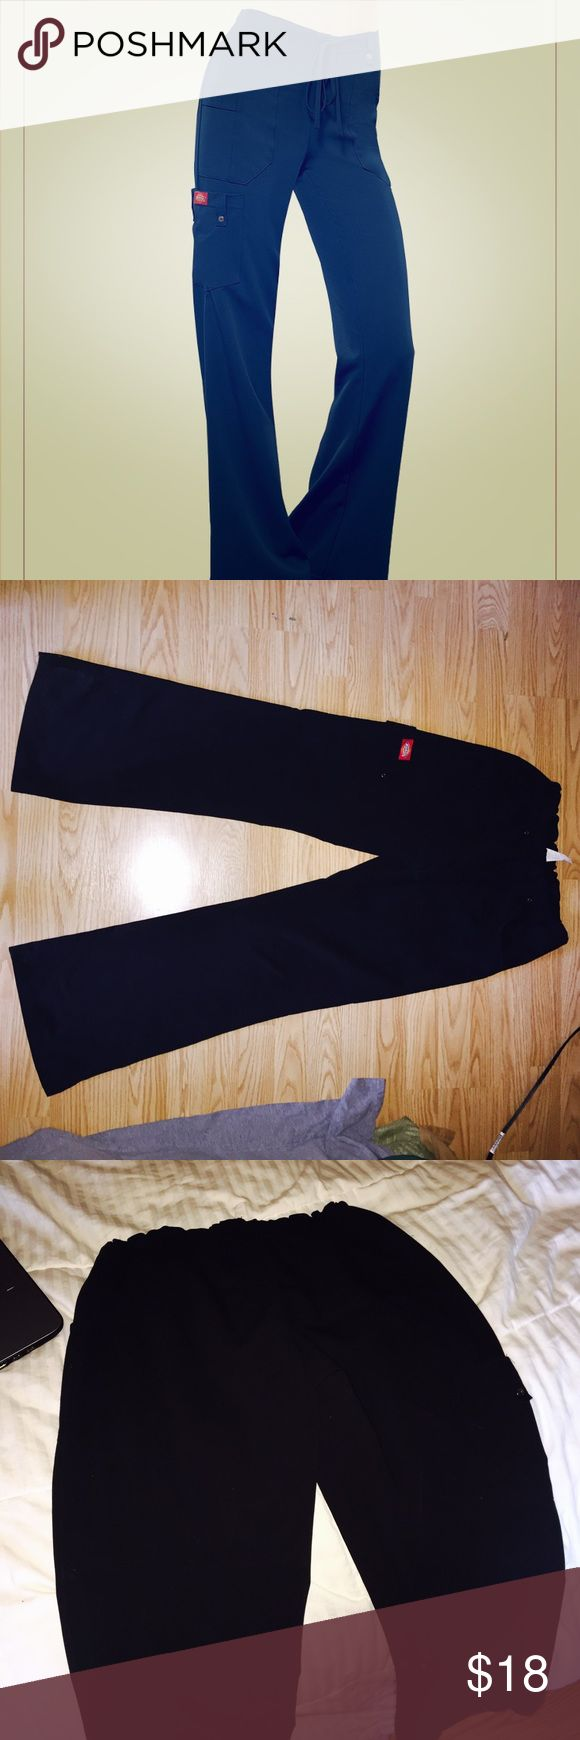 """Dickies Xrtreme stretch drawstring scrub pants XS COLOR: Black; size XS, not sure on the exact length but I'm 5'6"""" and they are about perfect. These are so comfy and cute!! If I needed black still I wouldn't be selling them. I wear a size 28 jeans for size reference. I have two pairs of these for sale as well as two Dickies black tops. Dickies Pants"""